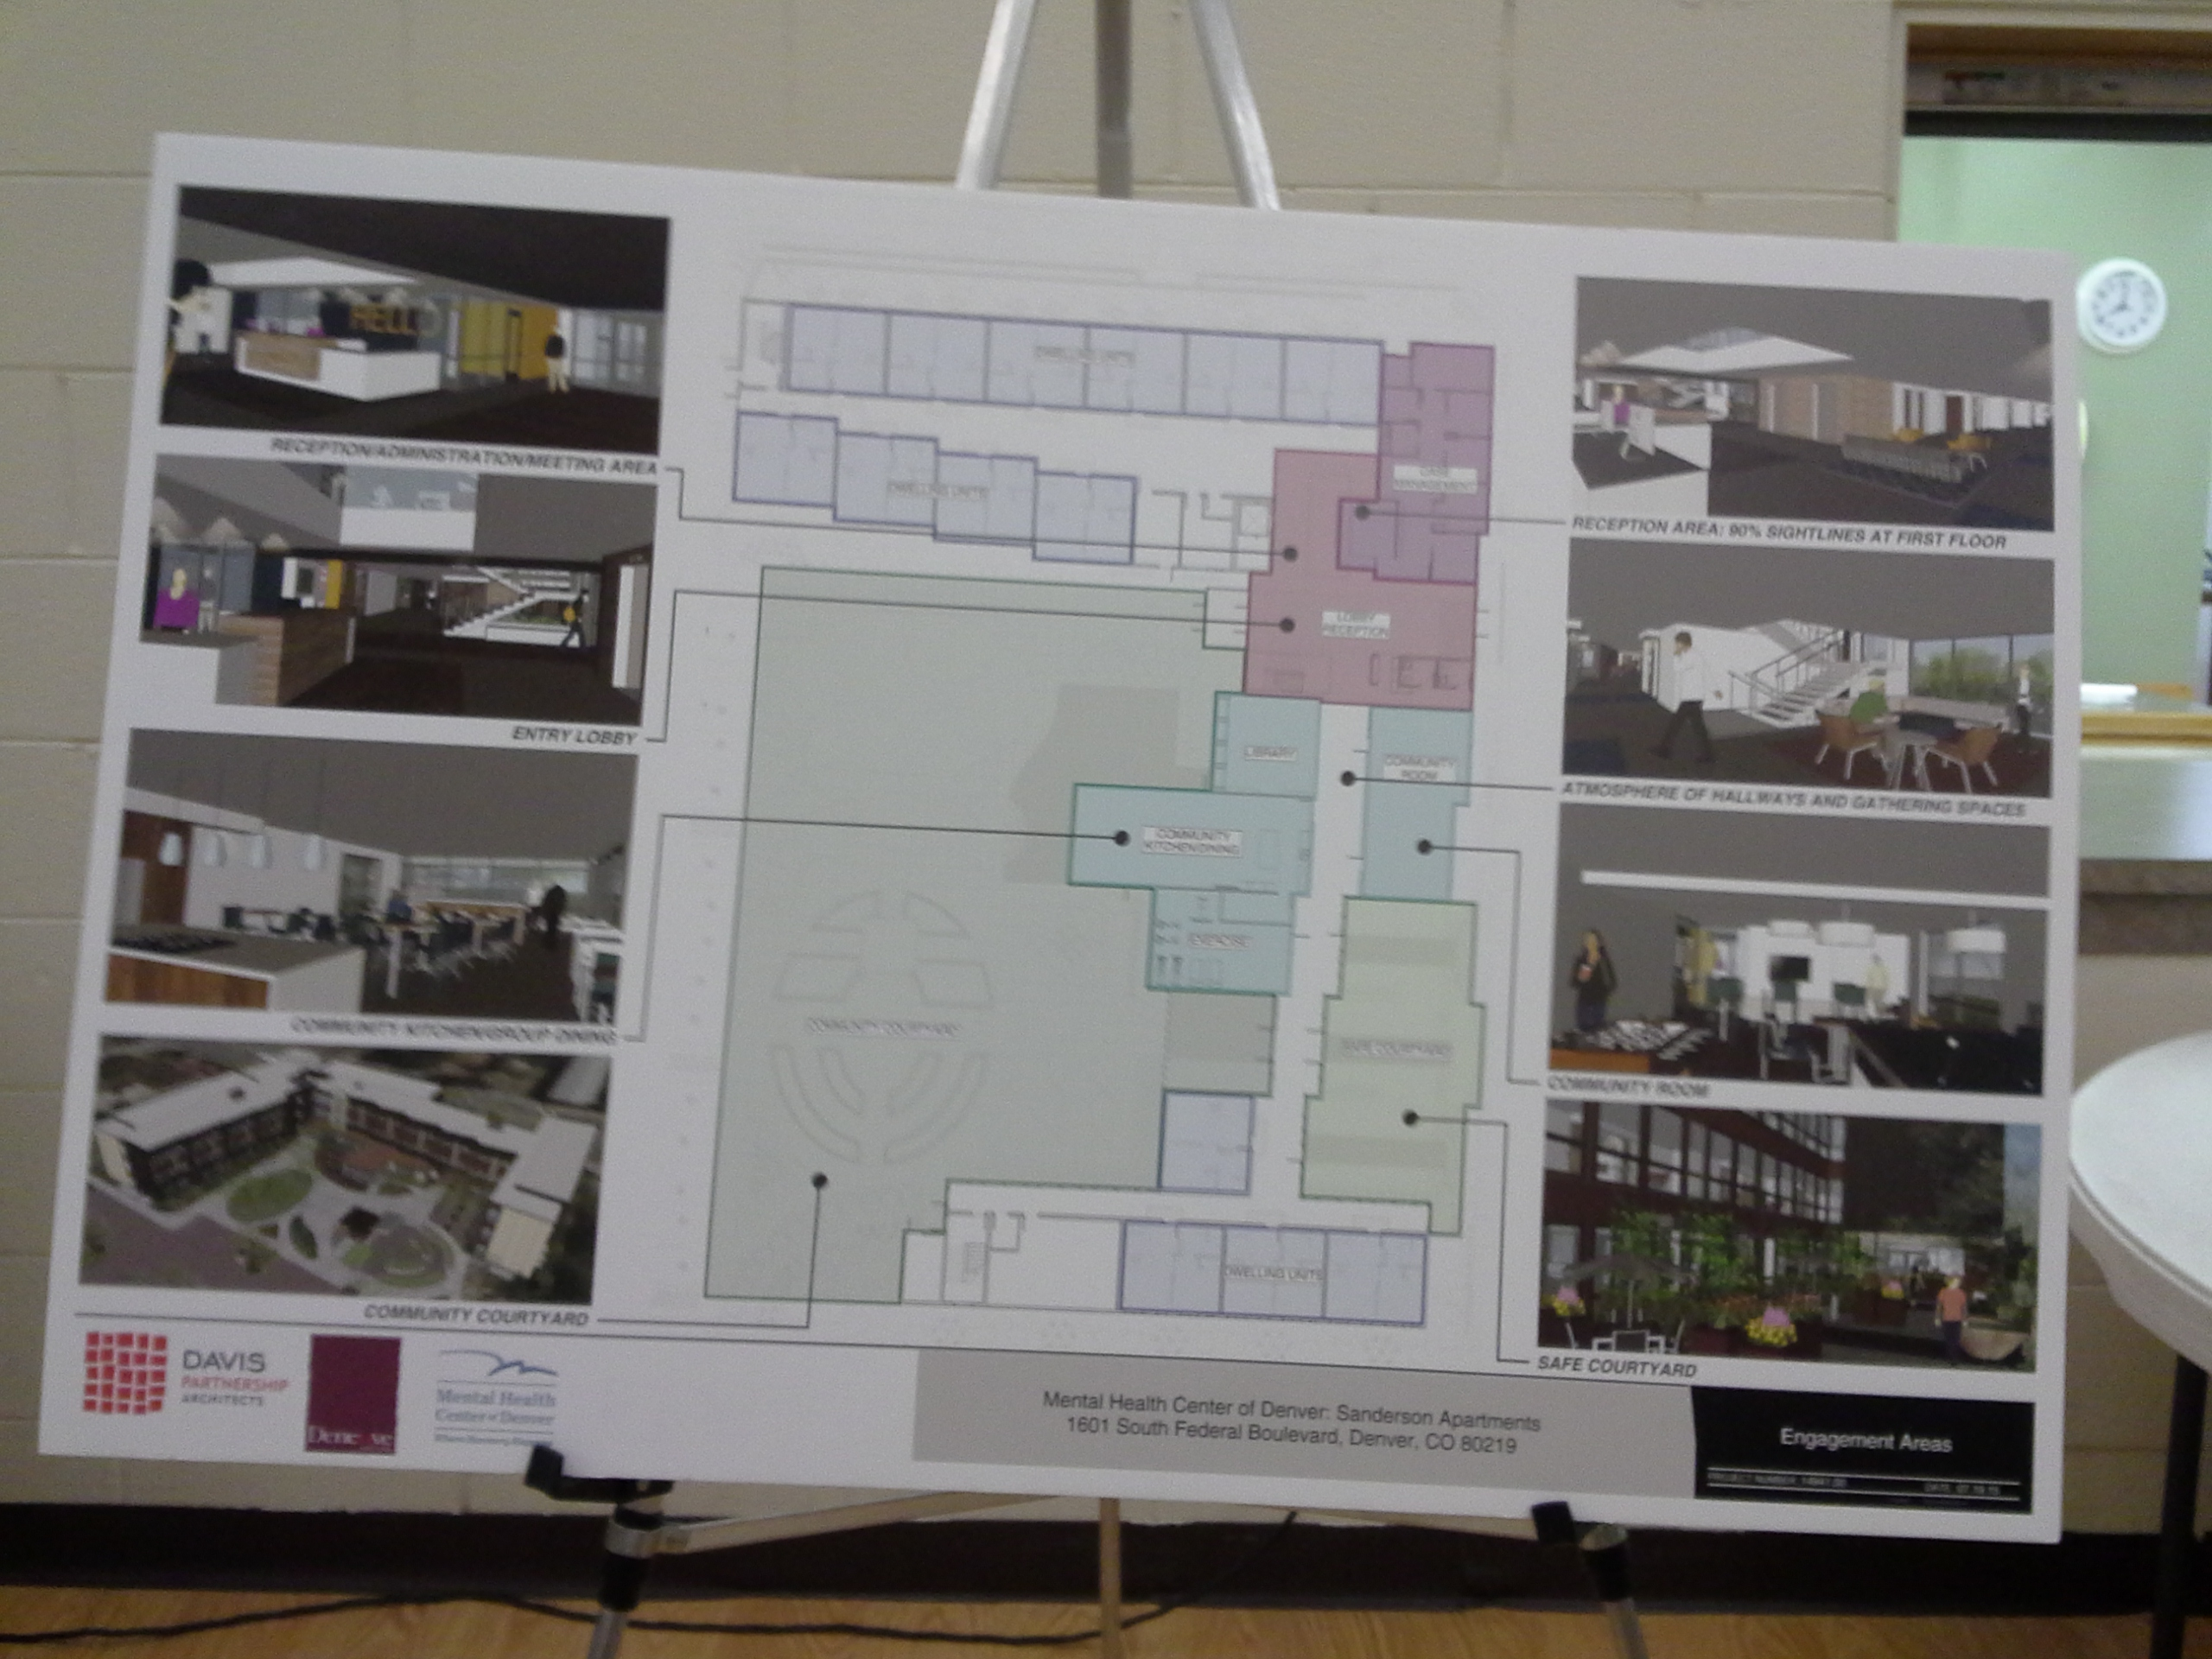 An easel showing design renderings of the Sanderson Apartments displayed at the Ruby Hill Neighborhood Association Meeting on October 20, 2015